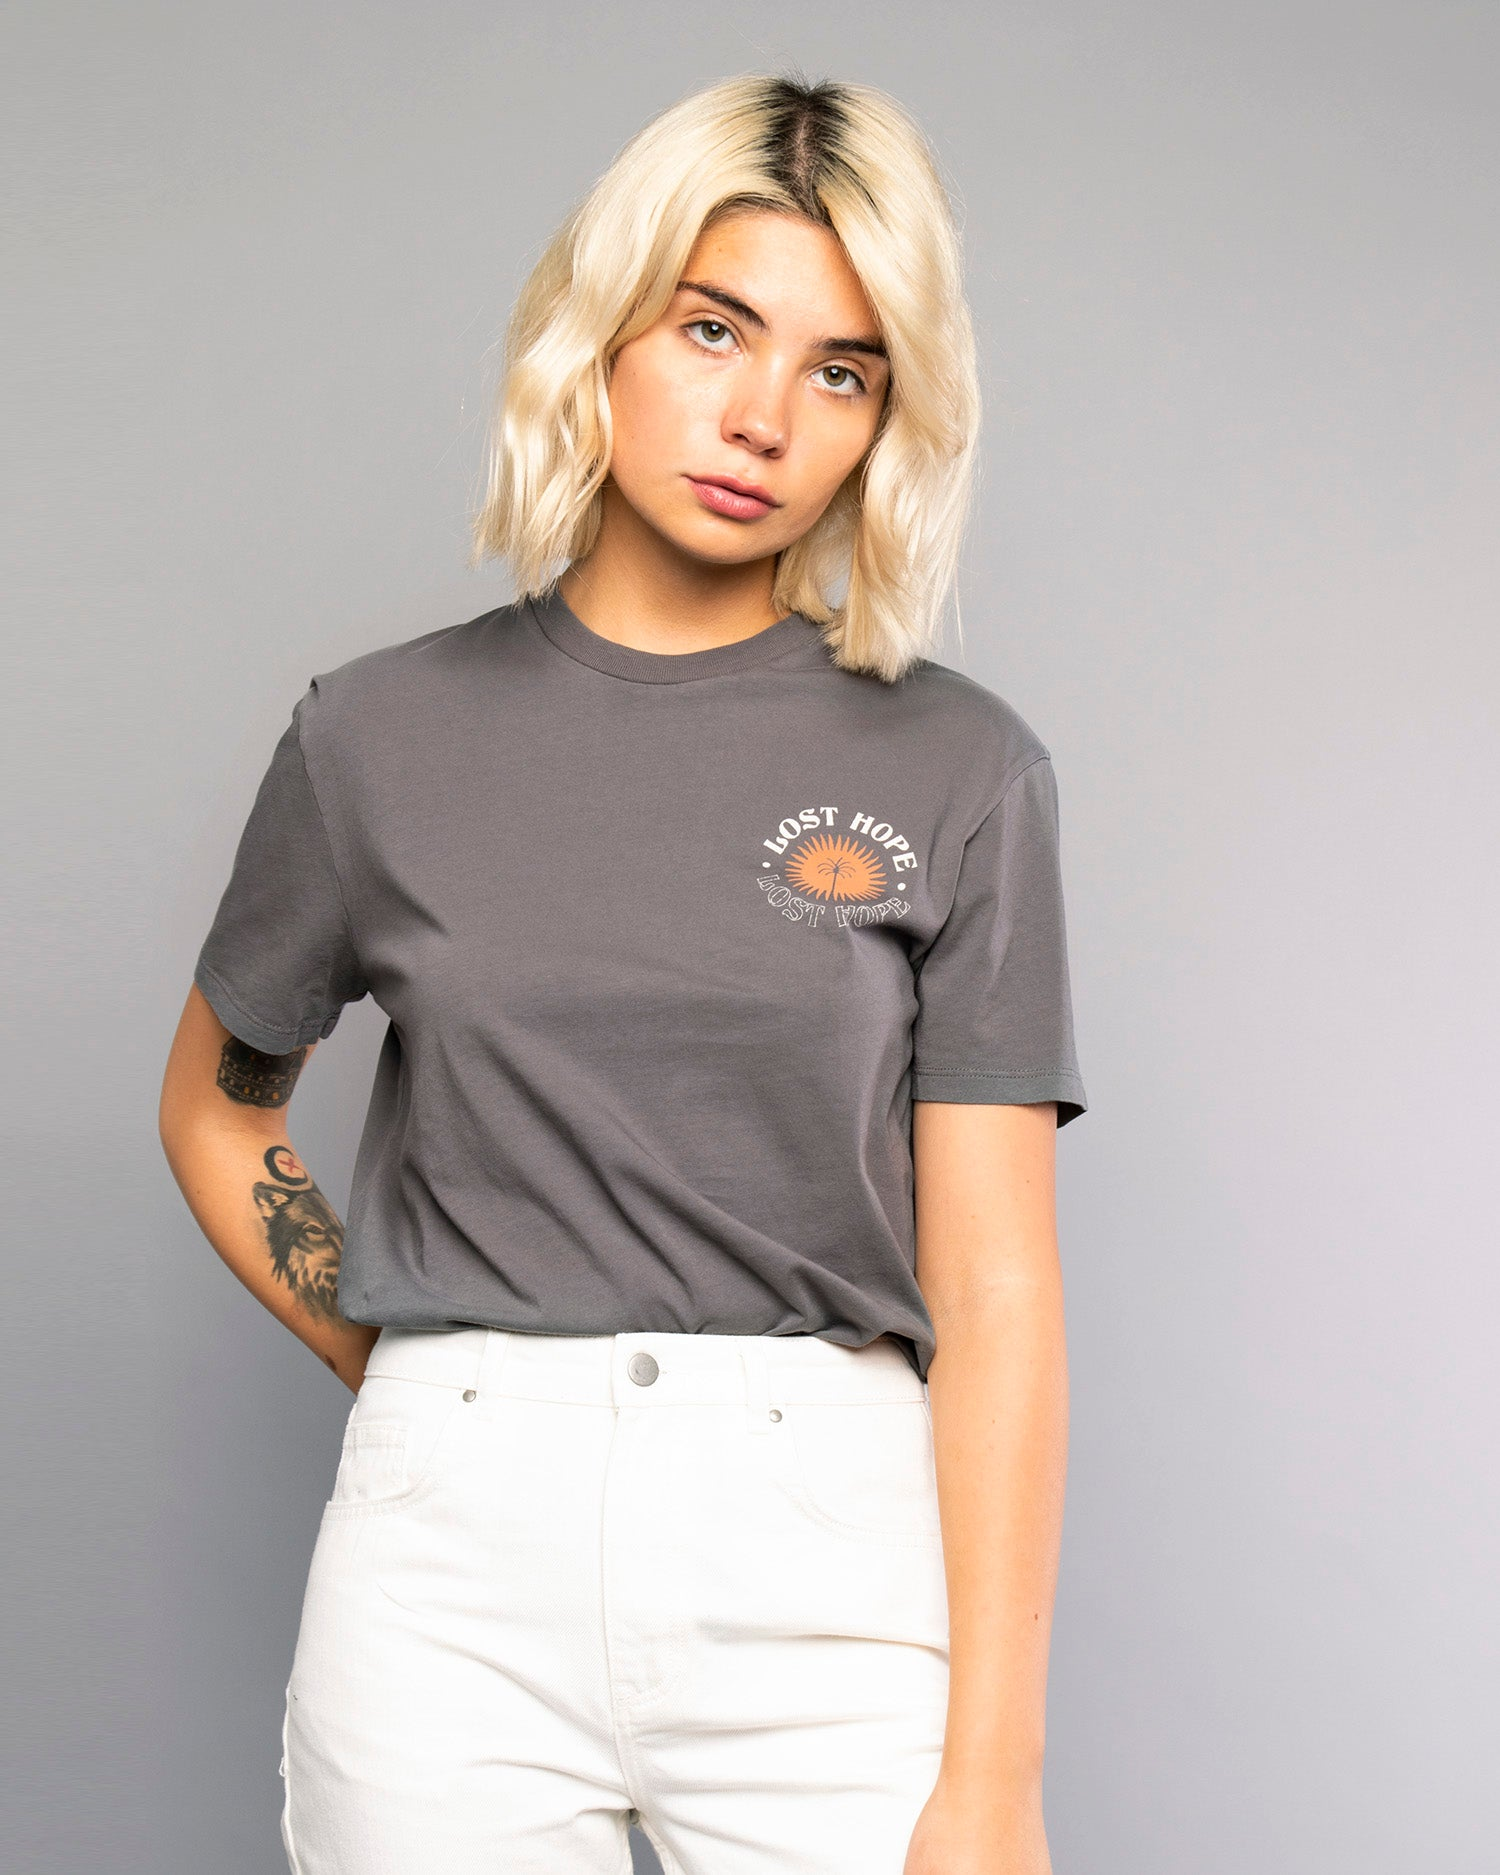 Womens Lost Hope Grey T-Shirt